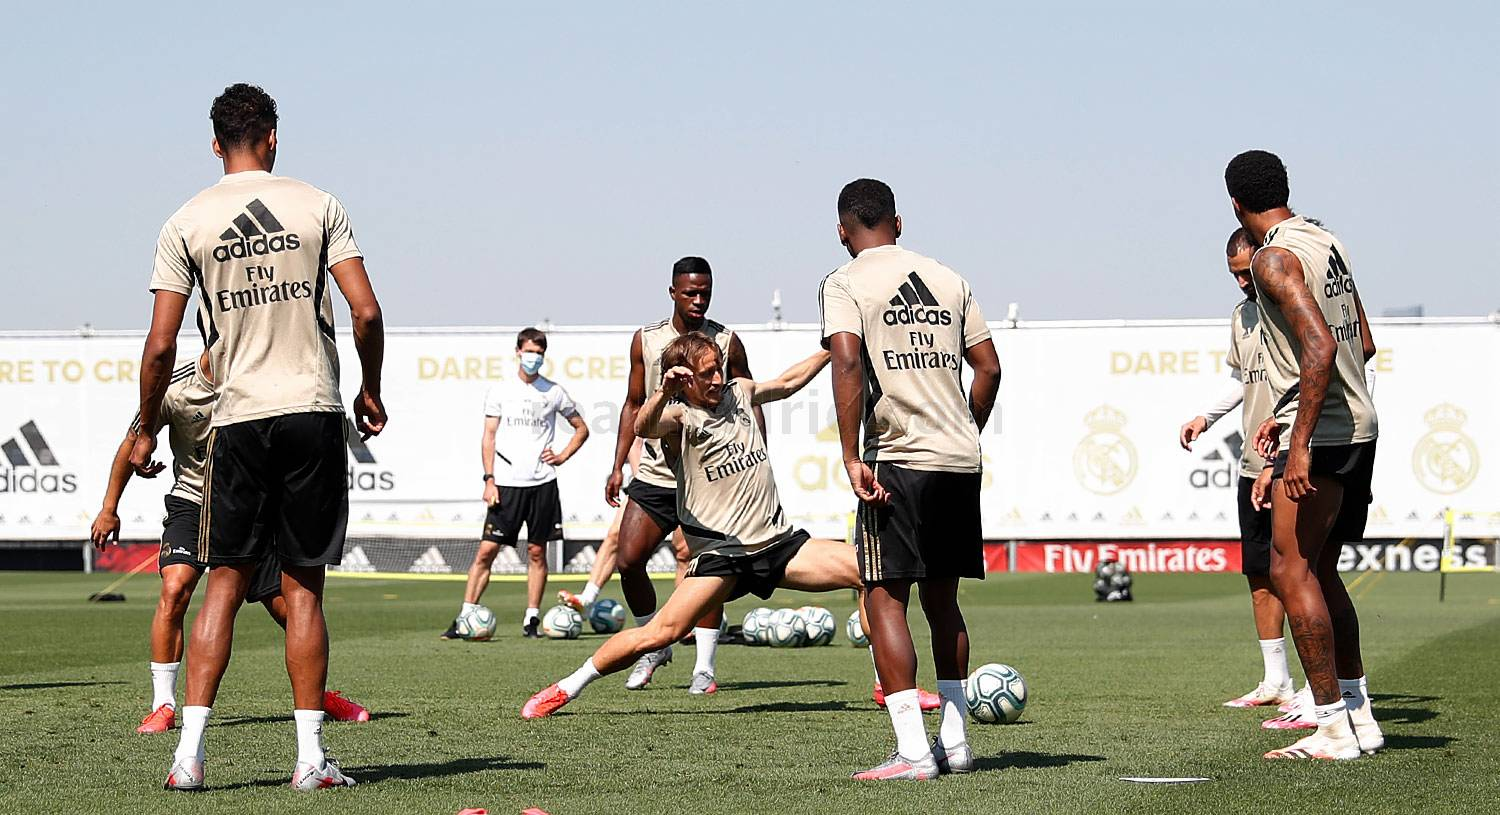 Real Madrid - Entrenamiento del Real Madrid  - 23-06-2020